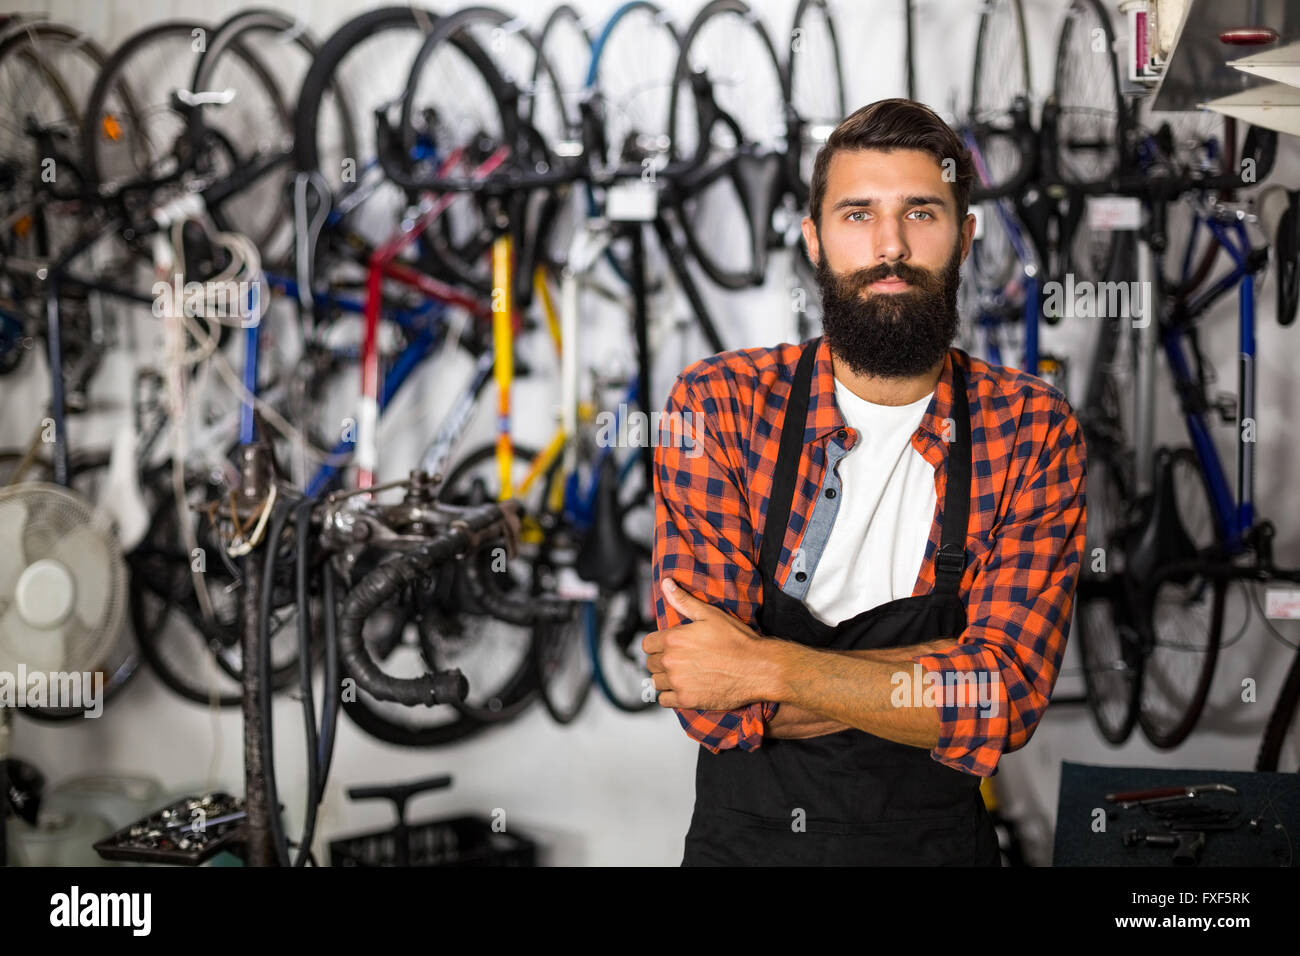 Bike mechanic standing with arms crossed - Stock Image